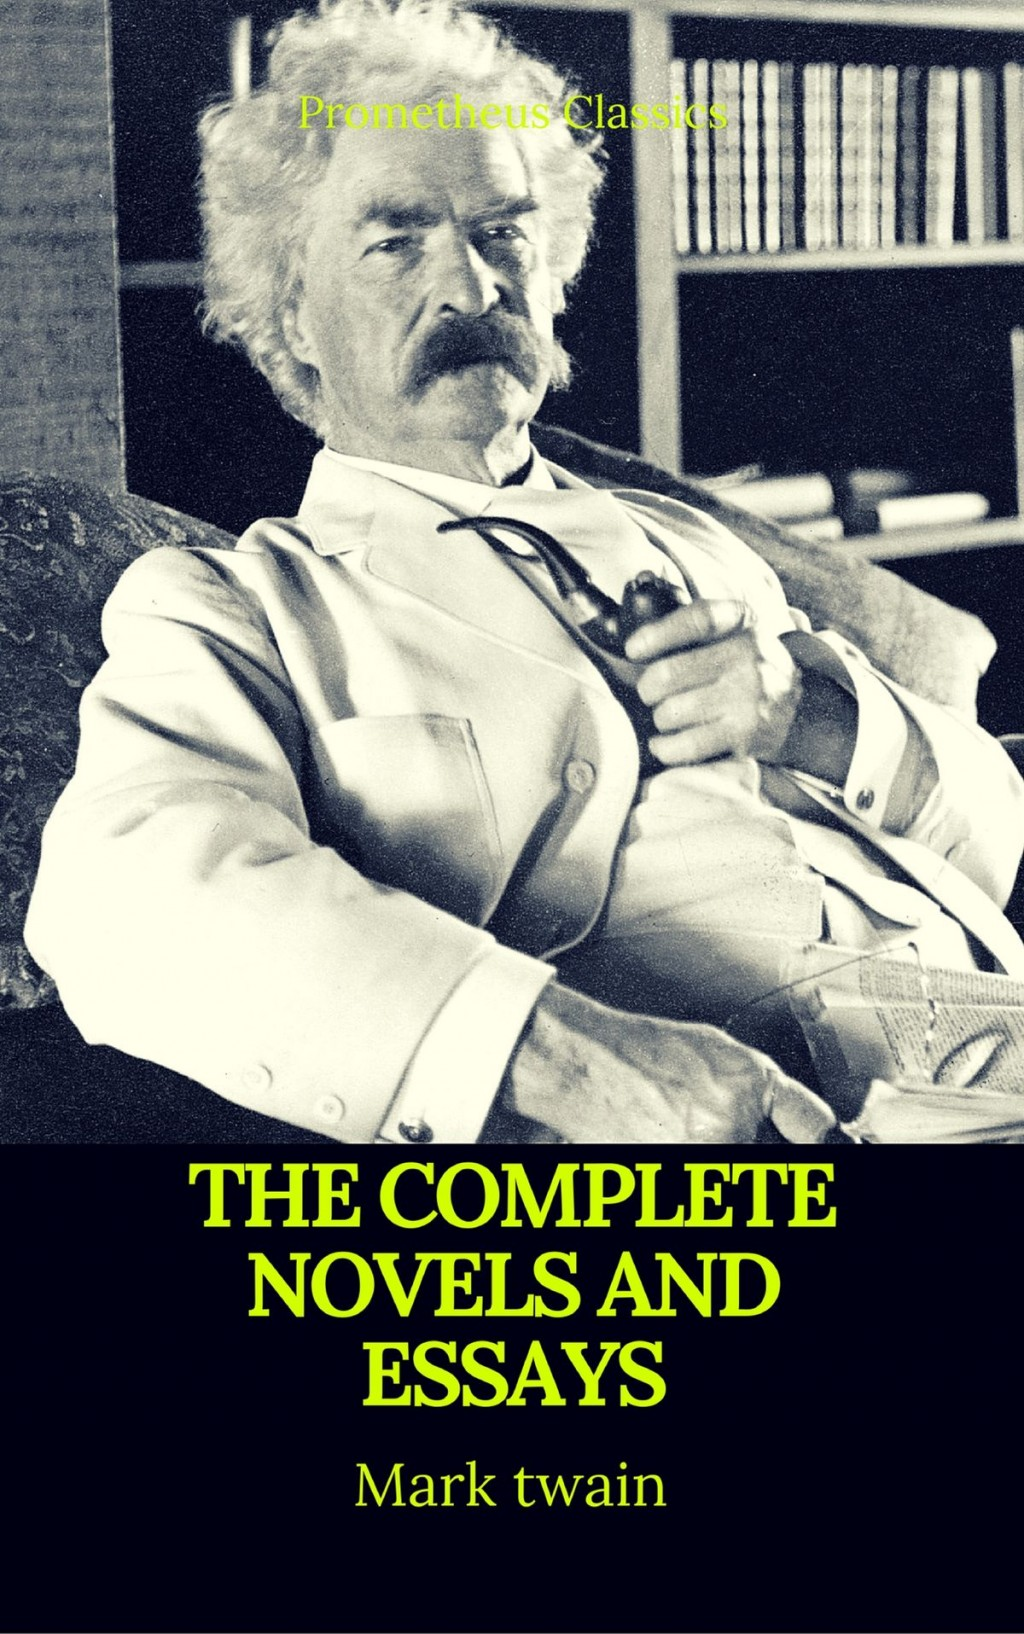 017 Mark Twain Essays The Complete Novels And Best Navigation Active Toc Prometheus Classics Essay Surprising Pdf On Writing Nonfiction Large